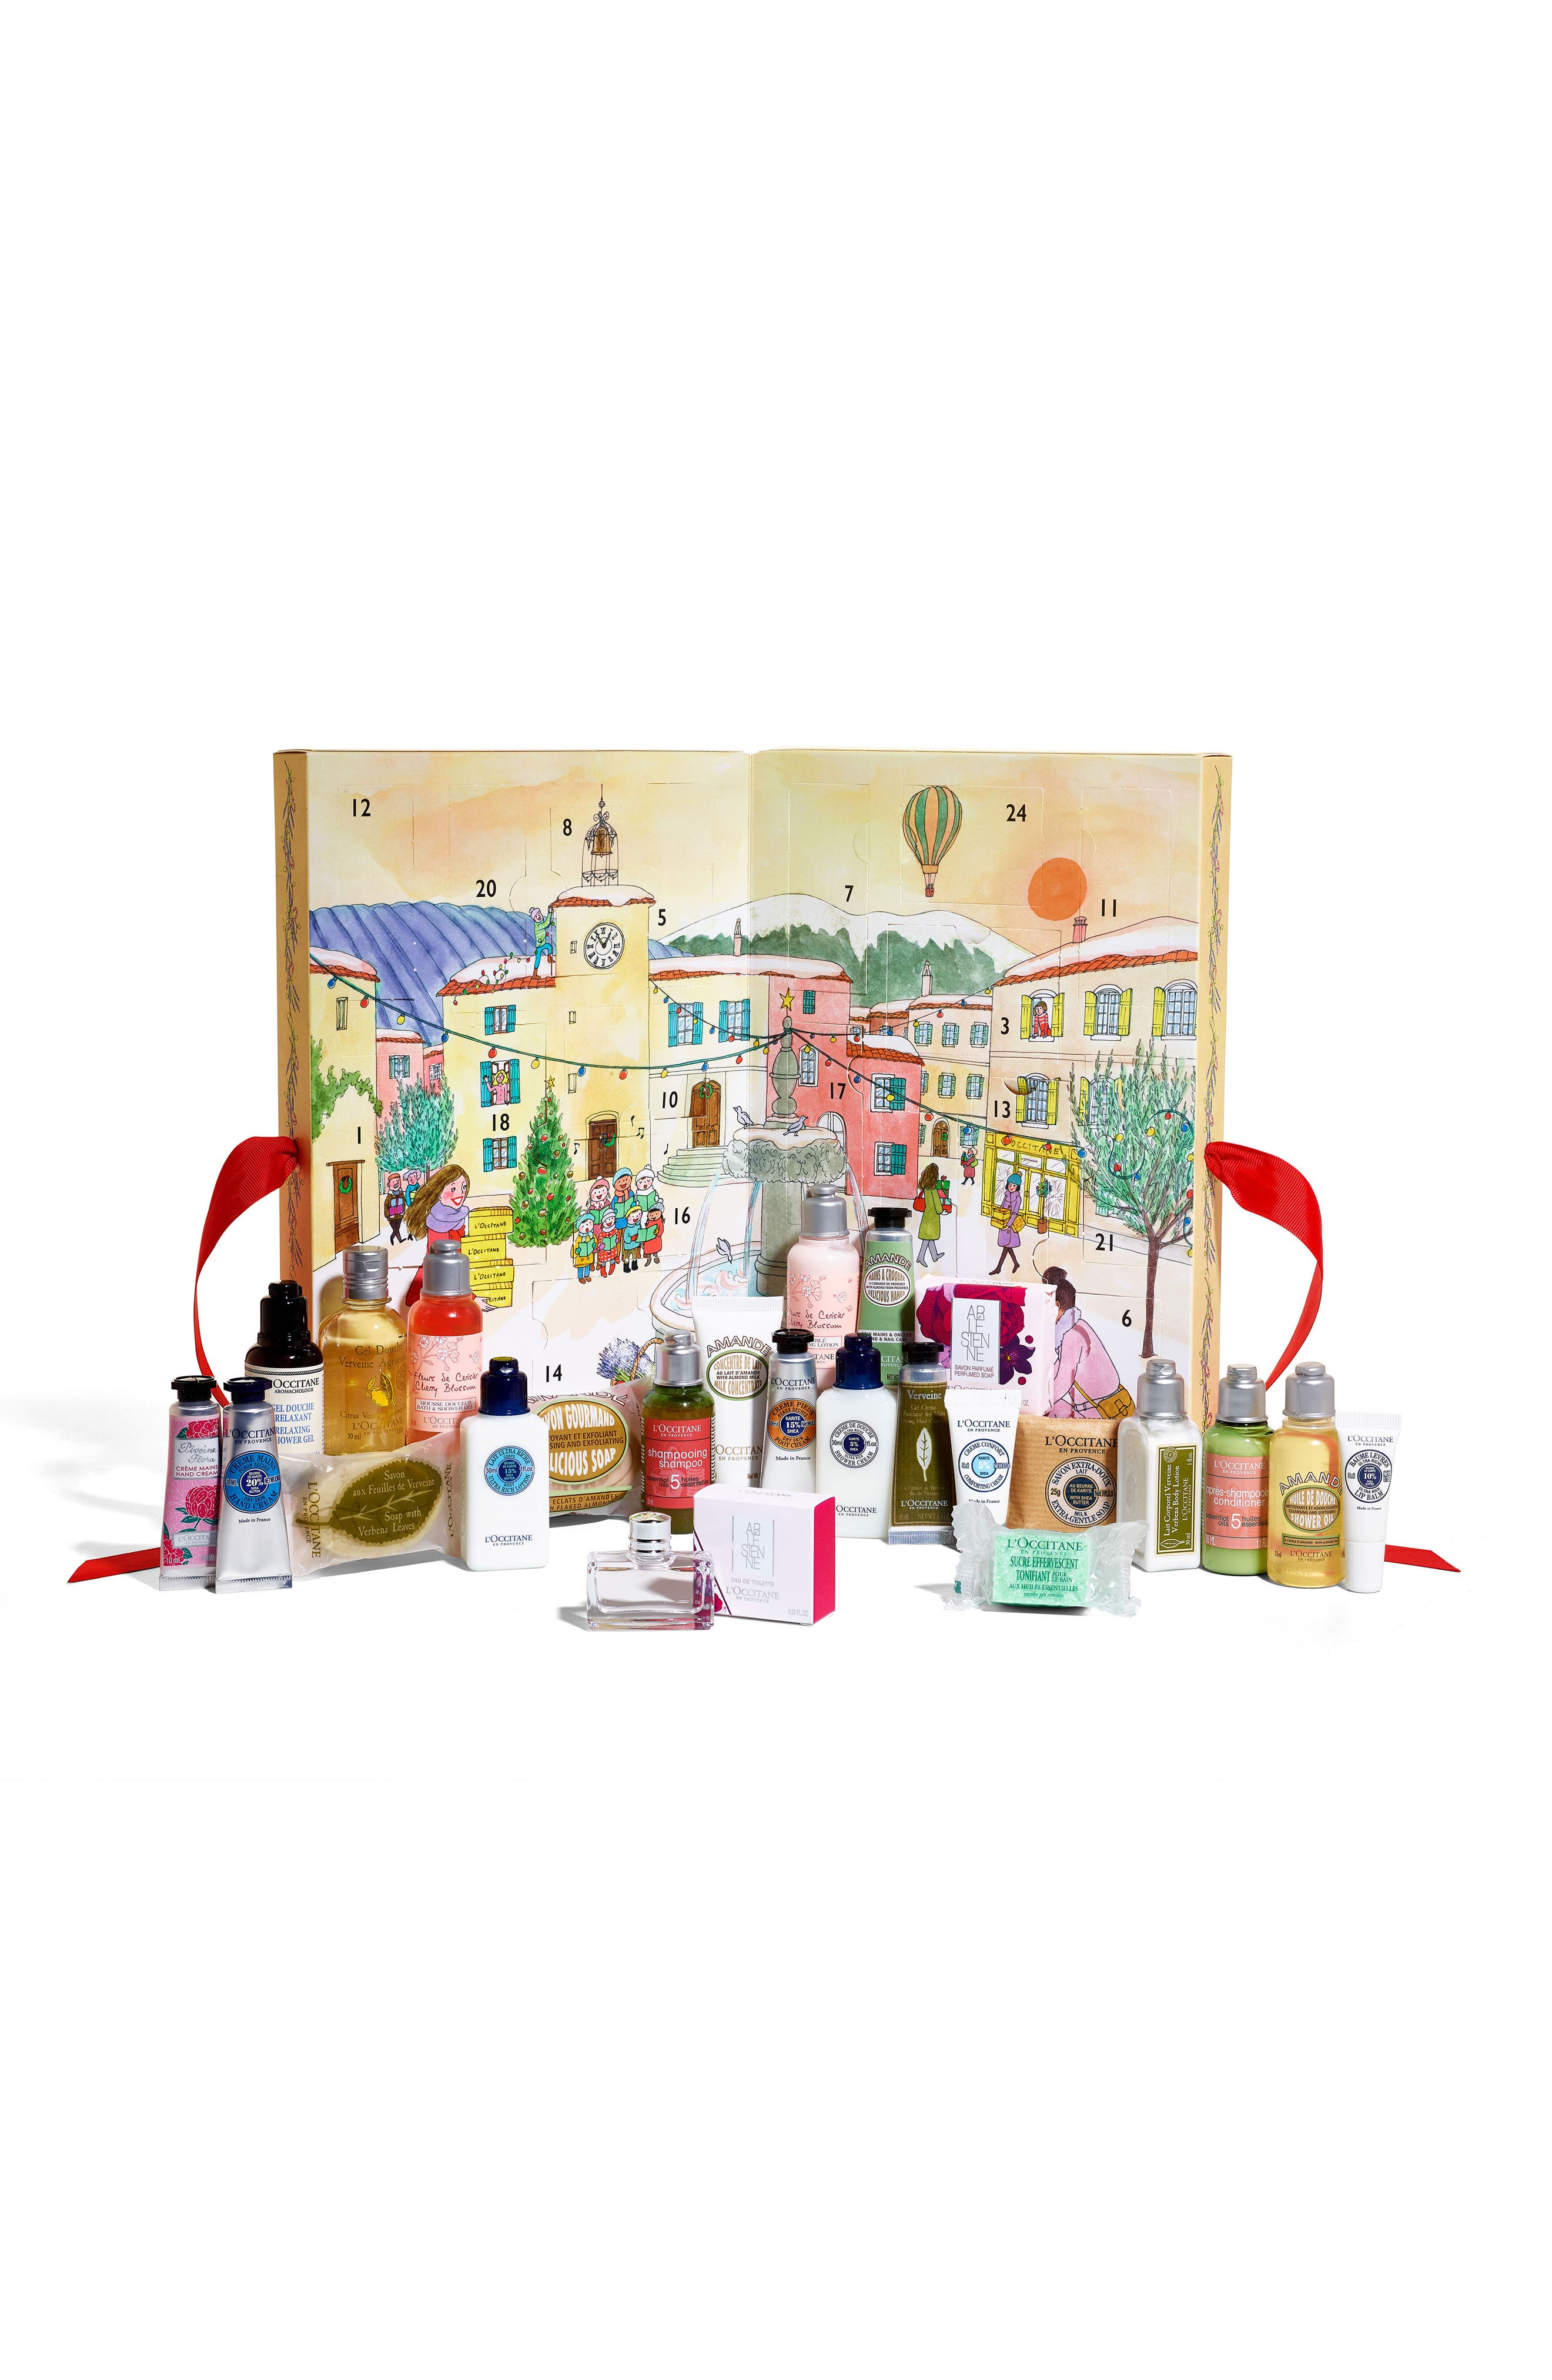 L'Occitane Advent Calendar Collection ($103.50 Value)